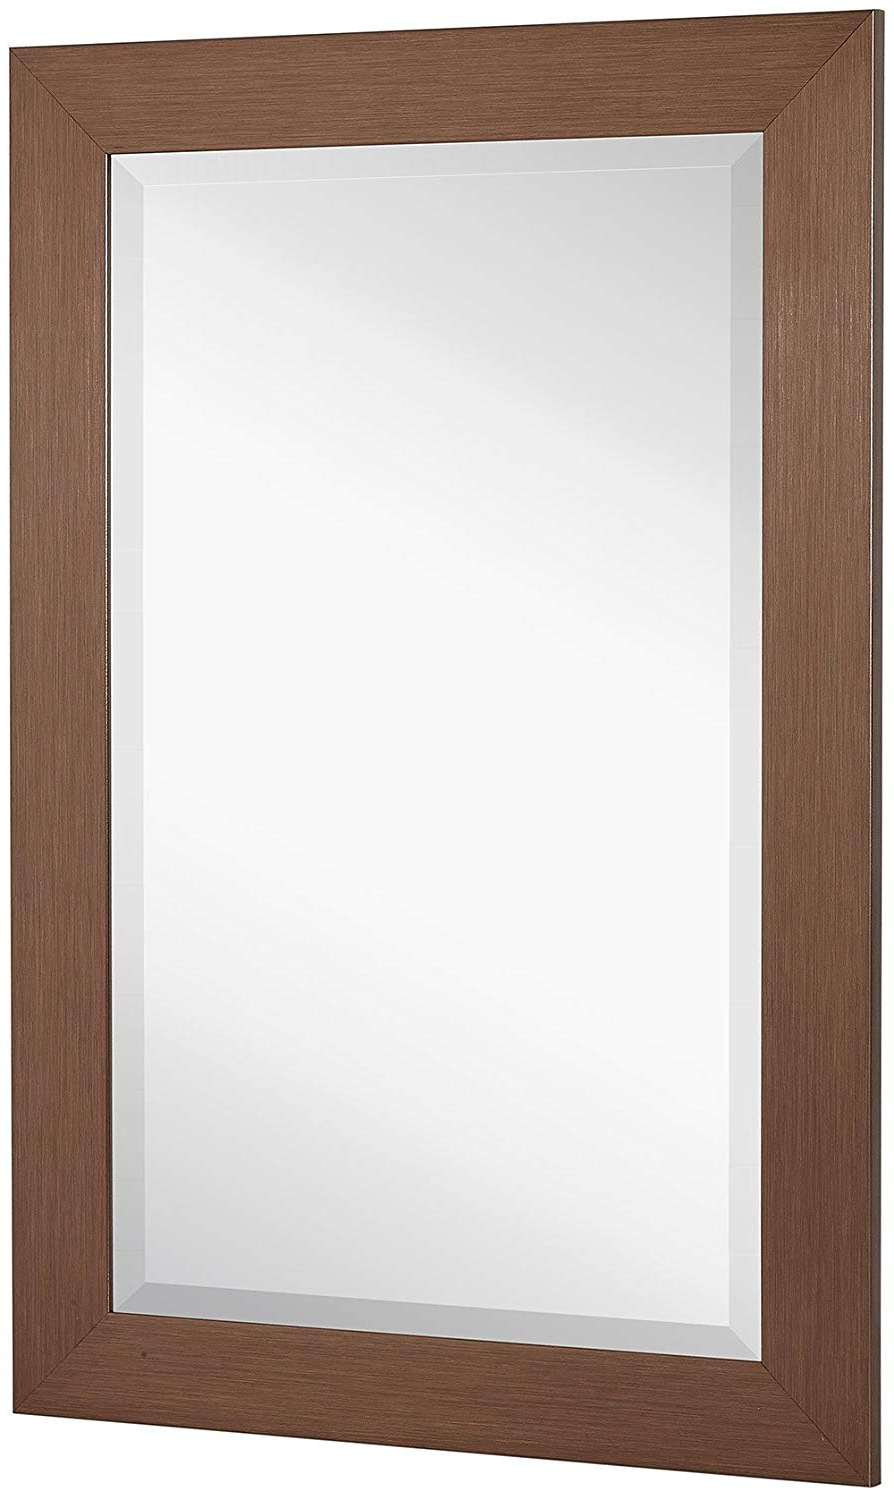 New Bronze Copper Modern Metallic Look Rectangle Wall Mirror (View 14 of 20)